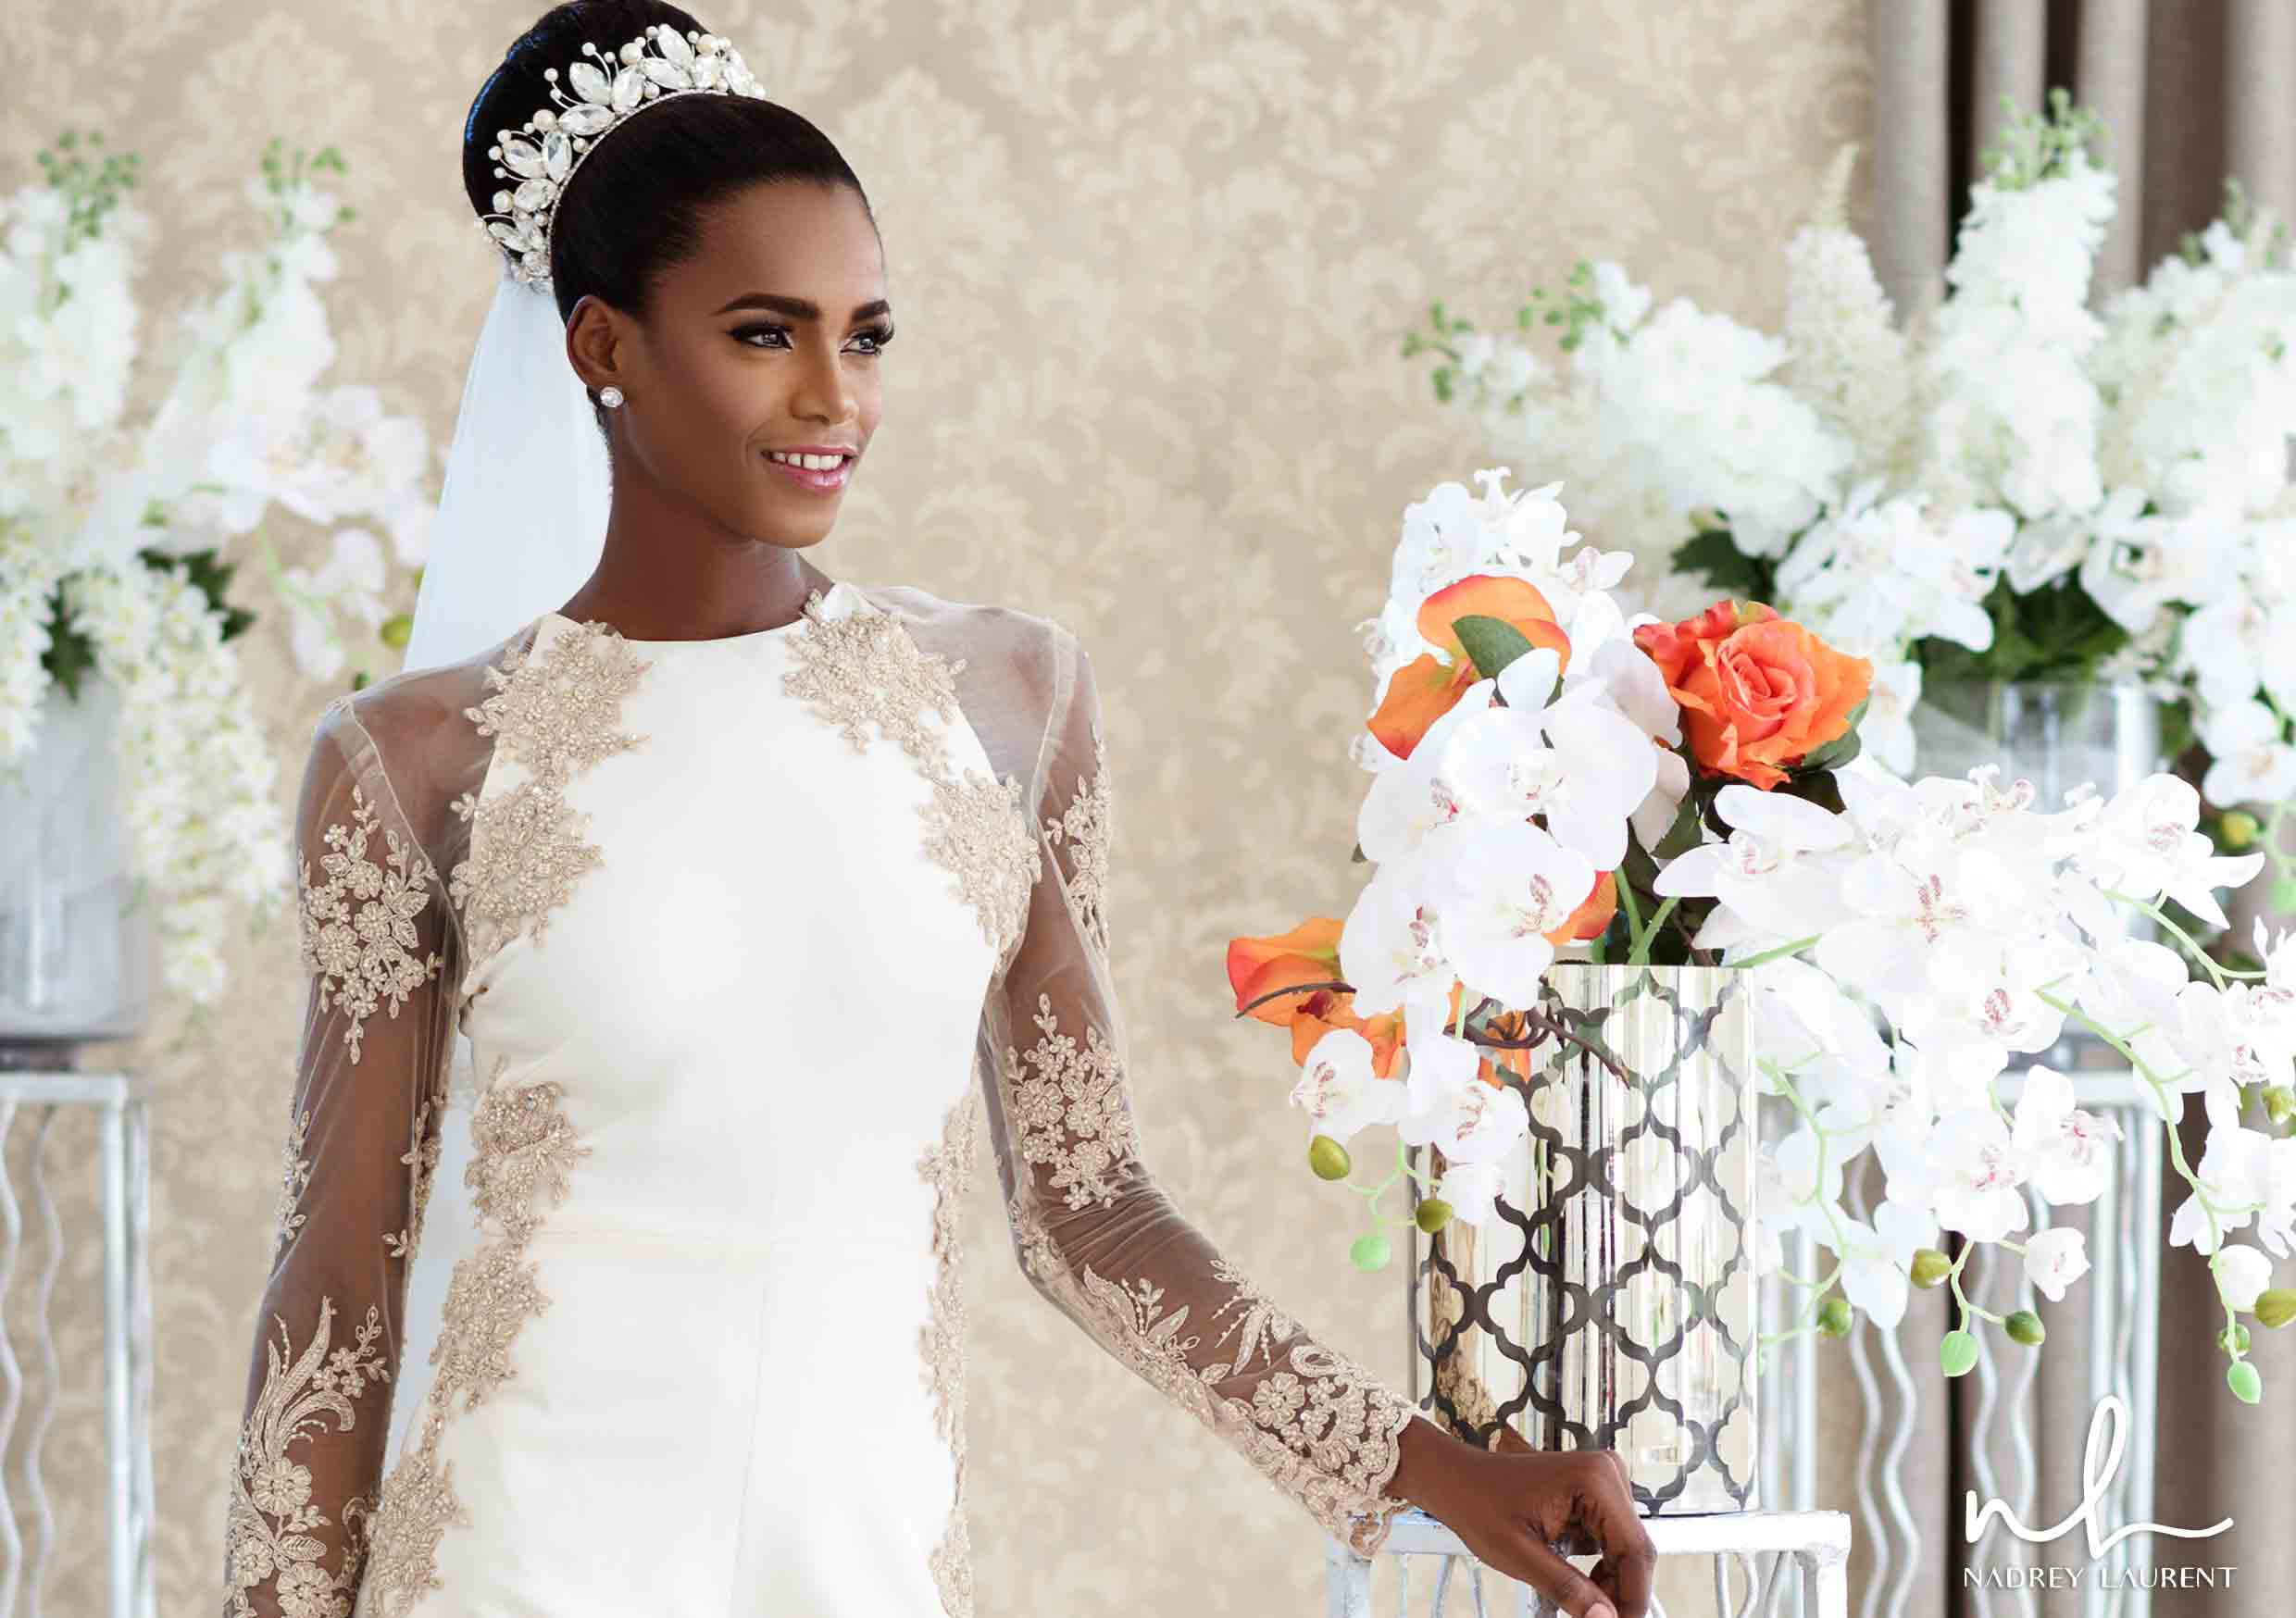 Nadrey Laurent Introduces It\'s First Ever Bridal Collection Themed ...